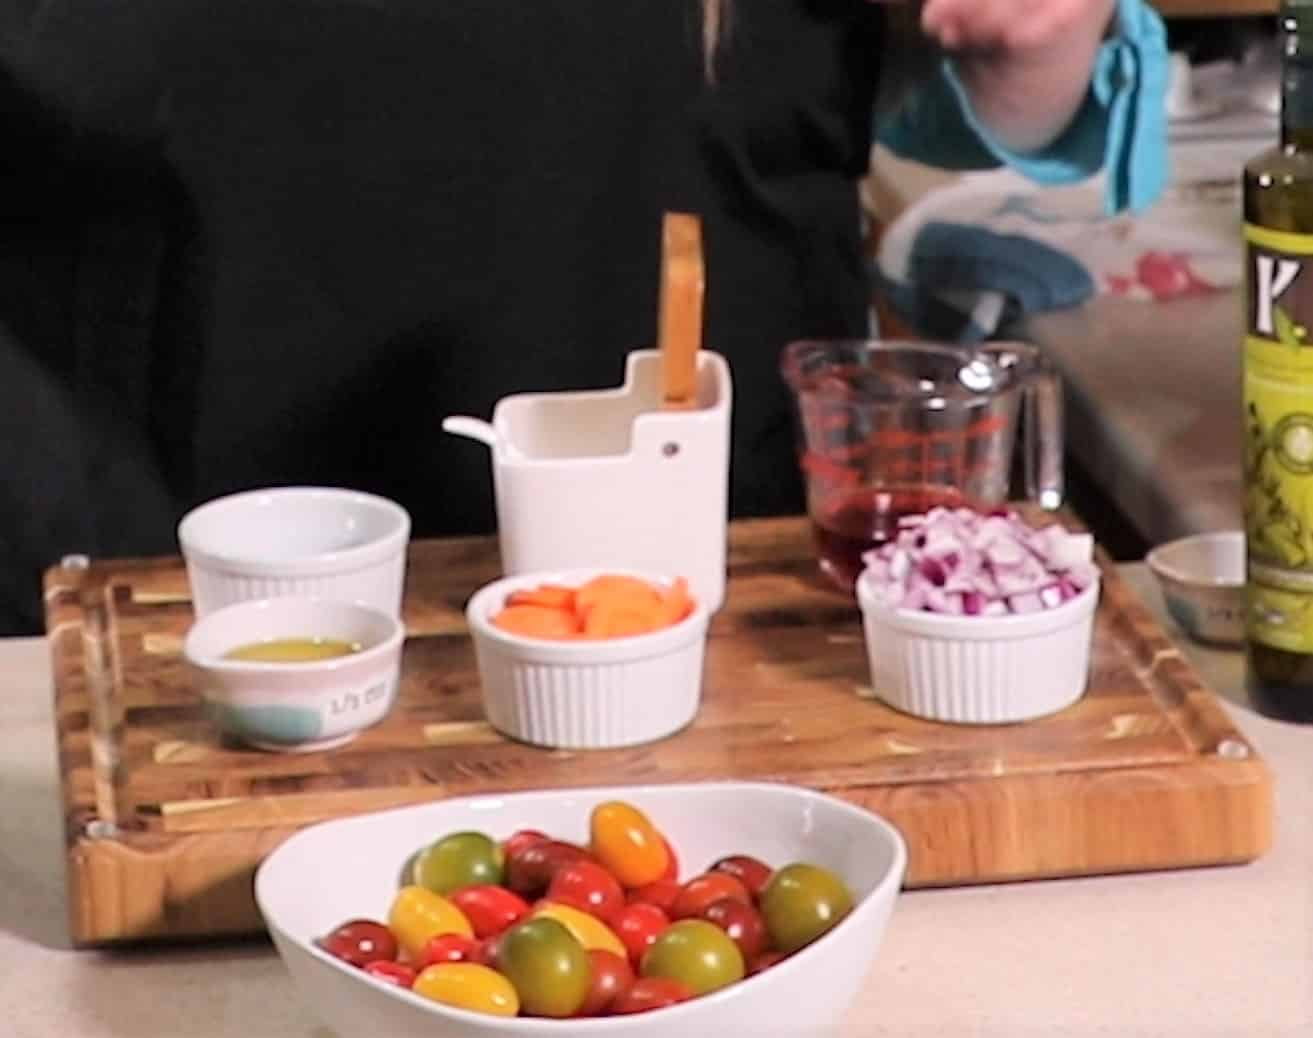 Ingredients for Fresh Tomato Salad recipe on teak wood cutting board containing tomatoes, sliced carrots, onions, Italian seasoning, red wine vinegar, olive oil and sugar